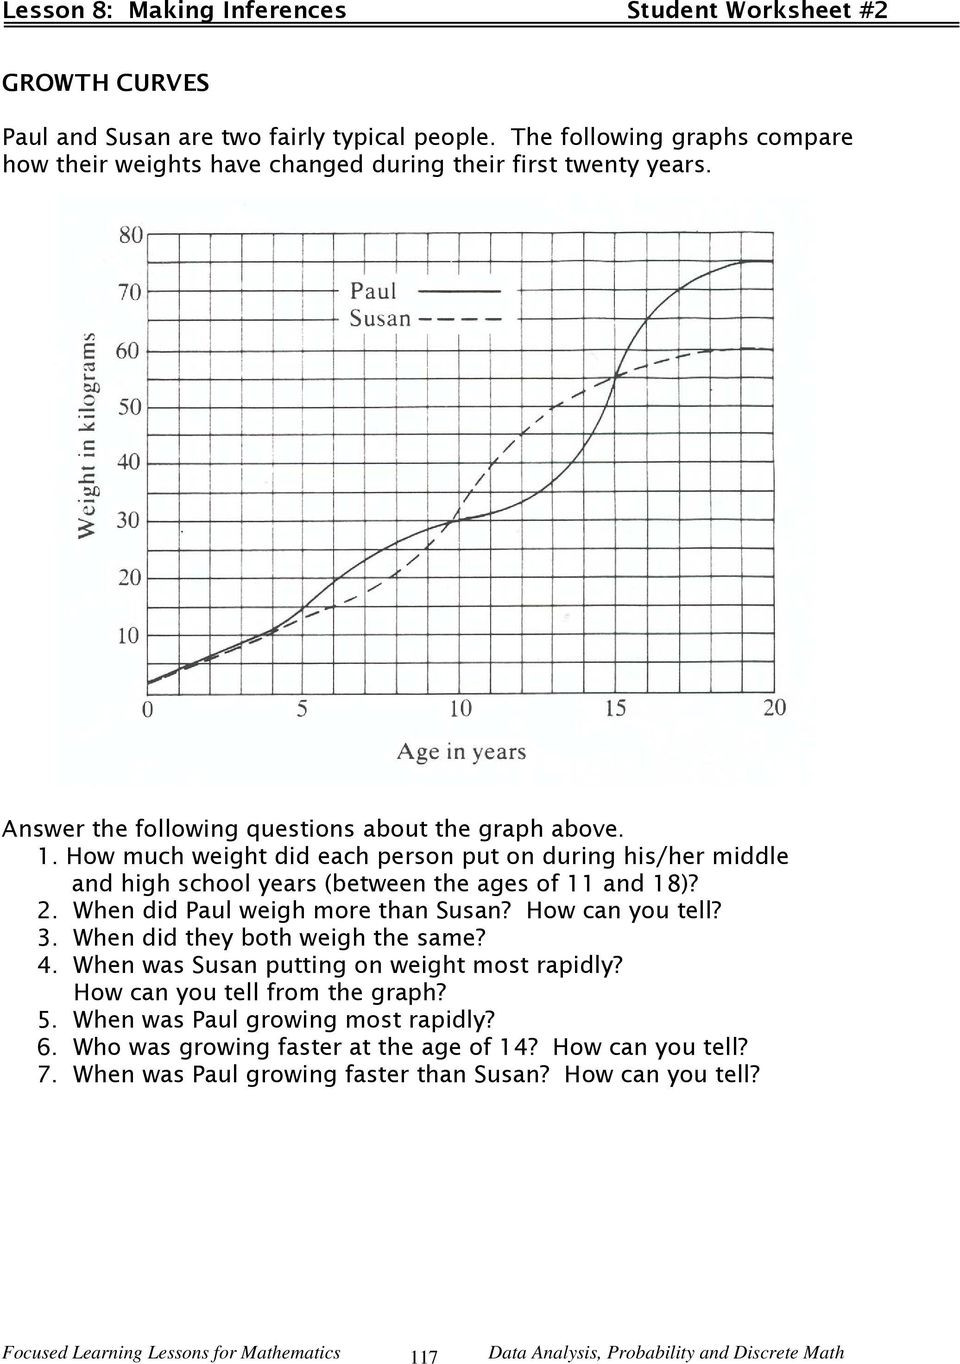 Probability Worksheets High School Pdf Lesson Making Inferences Pdf Free From Graphs Worksheets